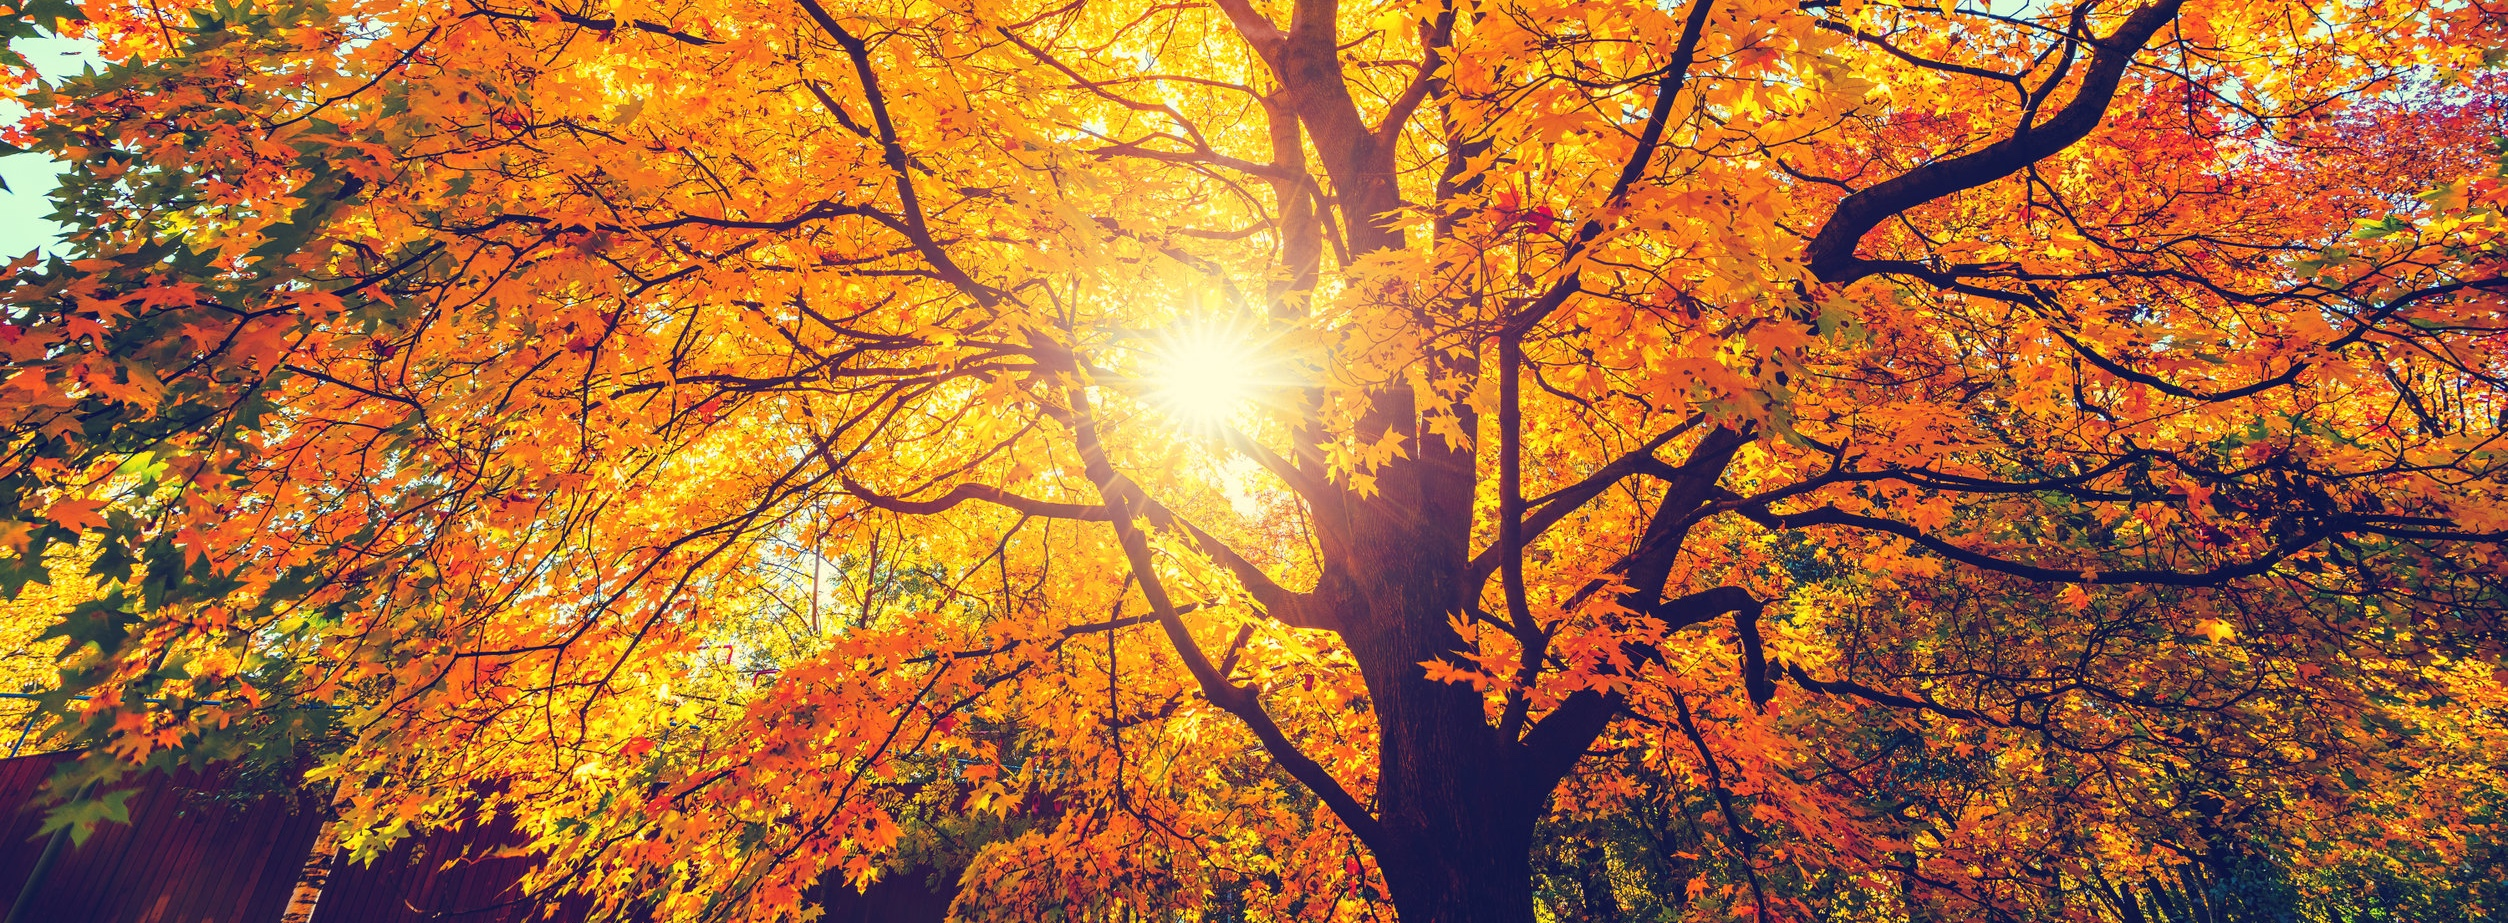 Sun shining through maple tree leaves in the fall